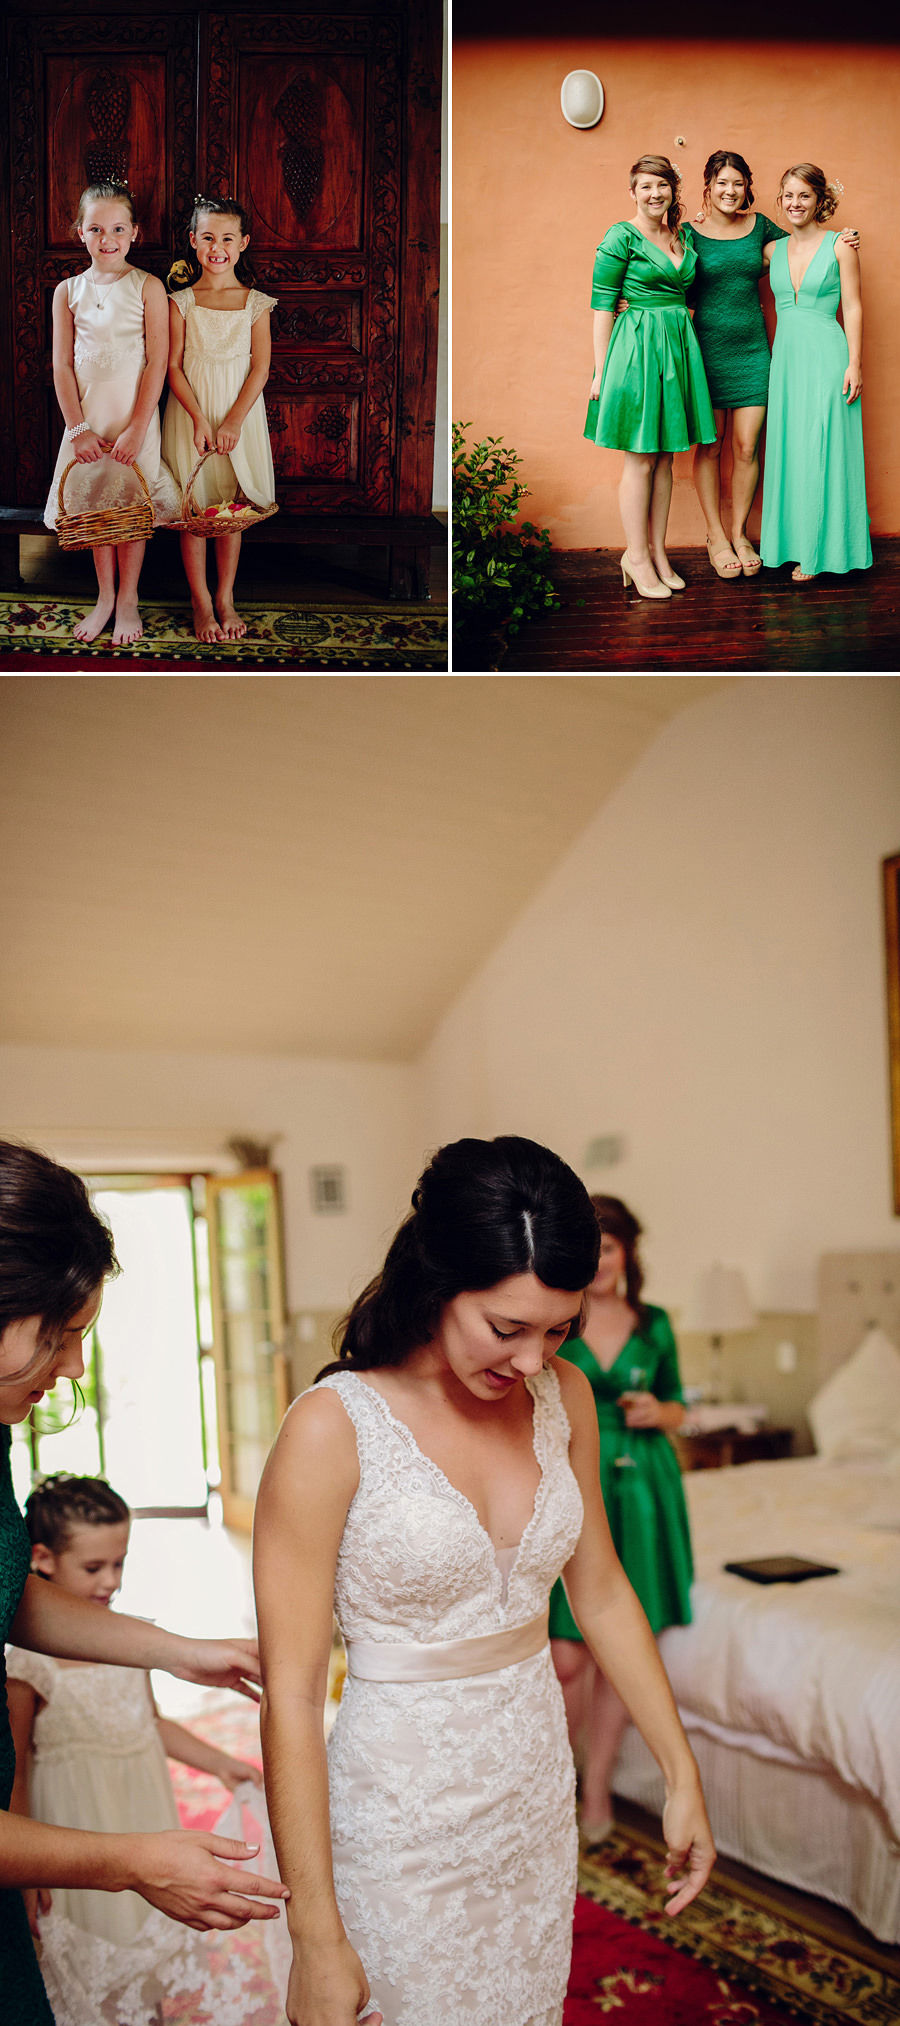 Orara Valley Wedding Photographers: Girls getting ready